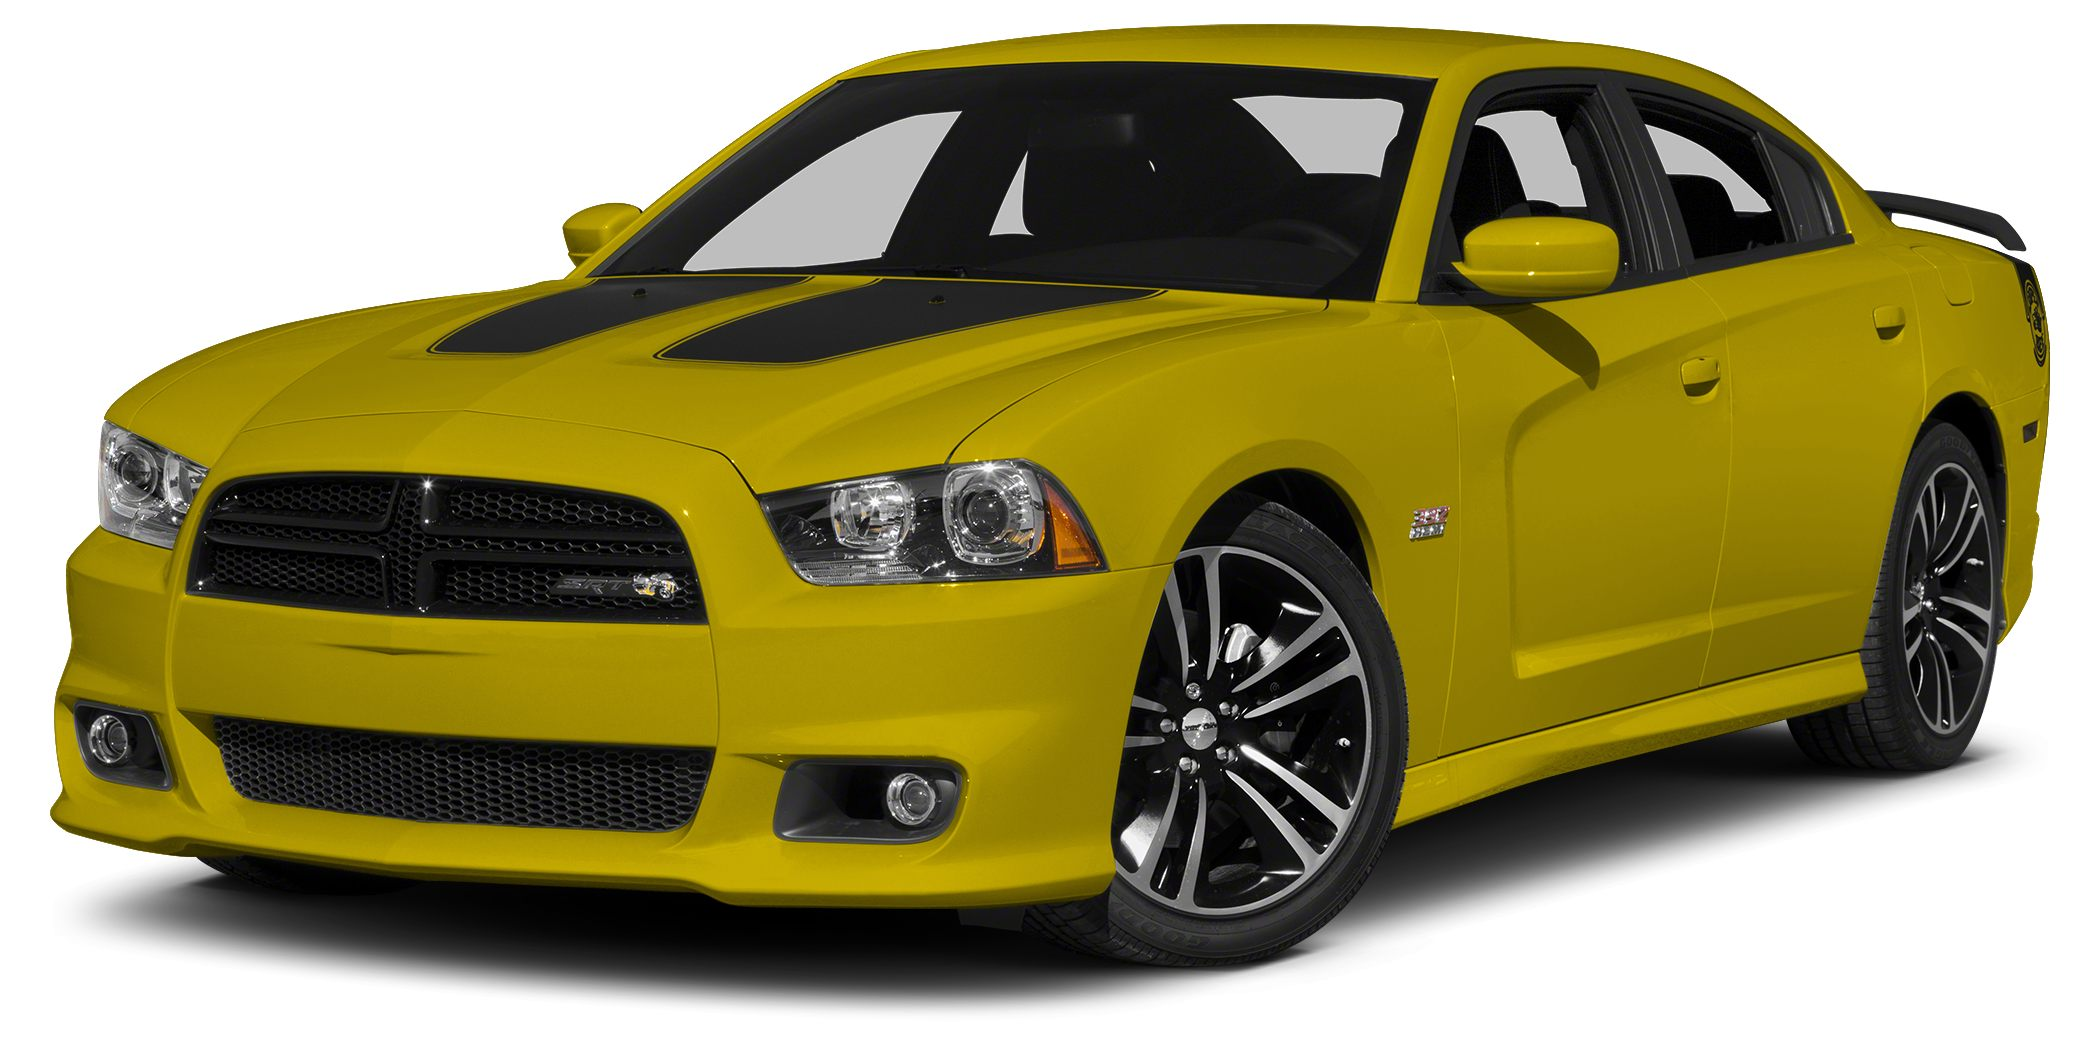 2012 Dodge Charger SRT8 Superbee Cloth A great deal in Chandler My My My What a deal Save th